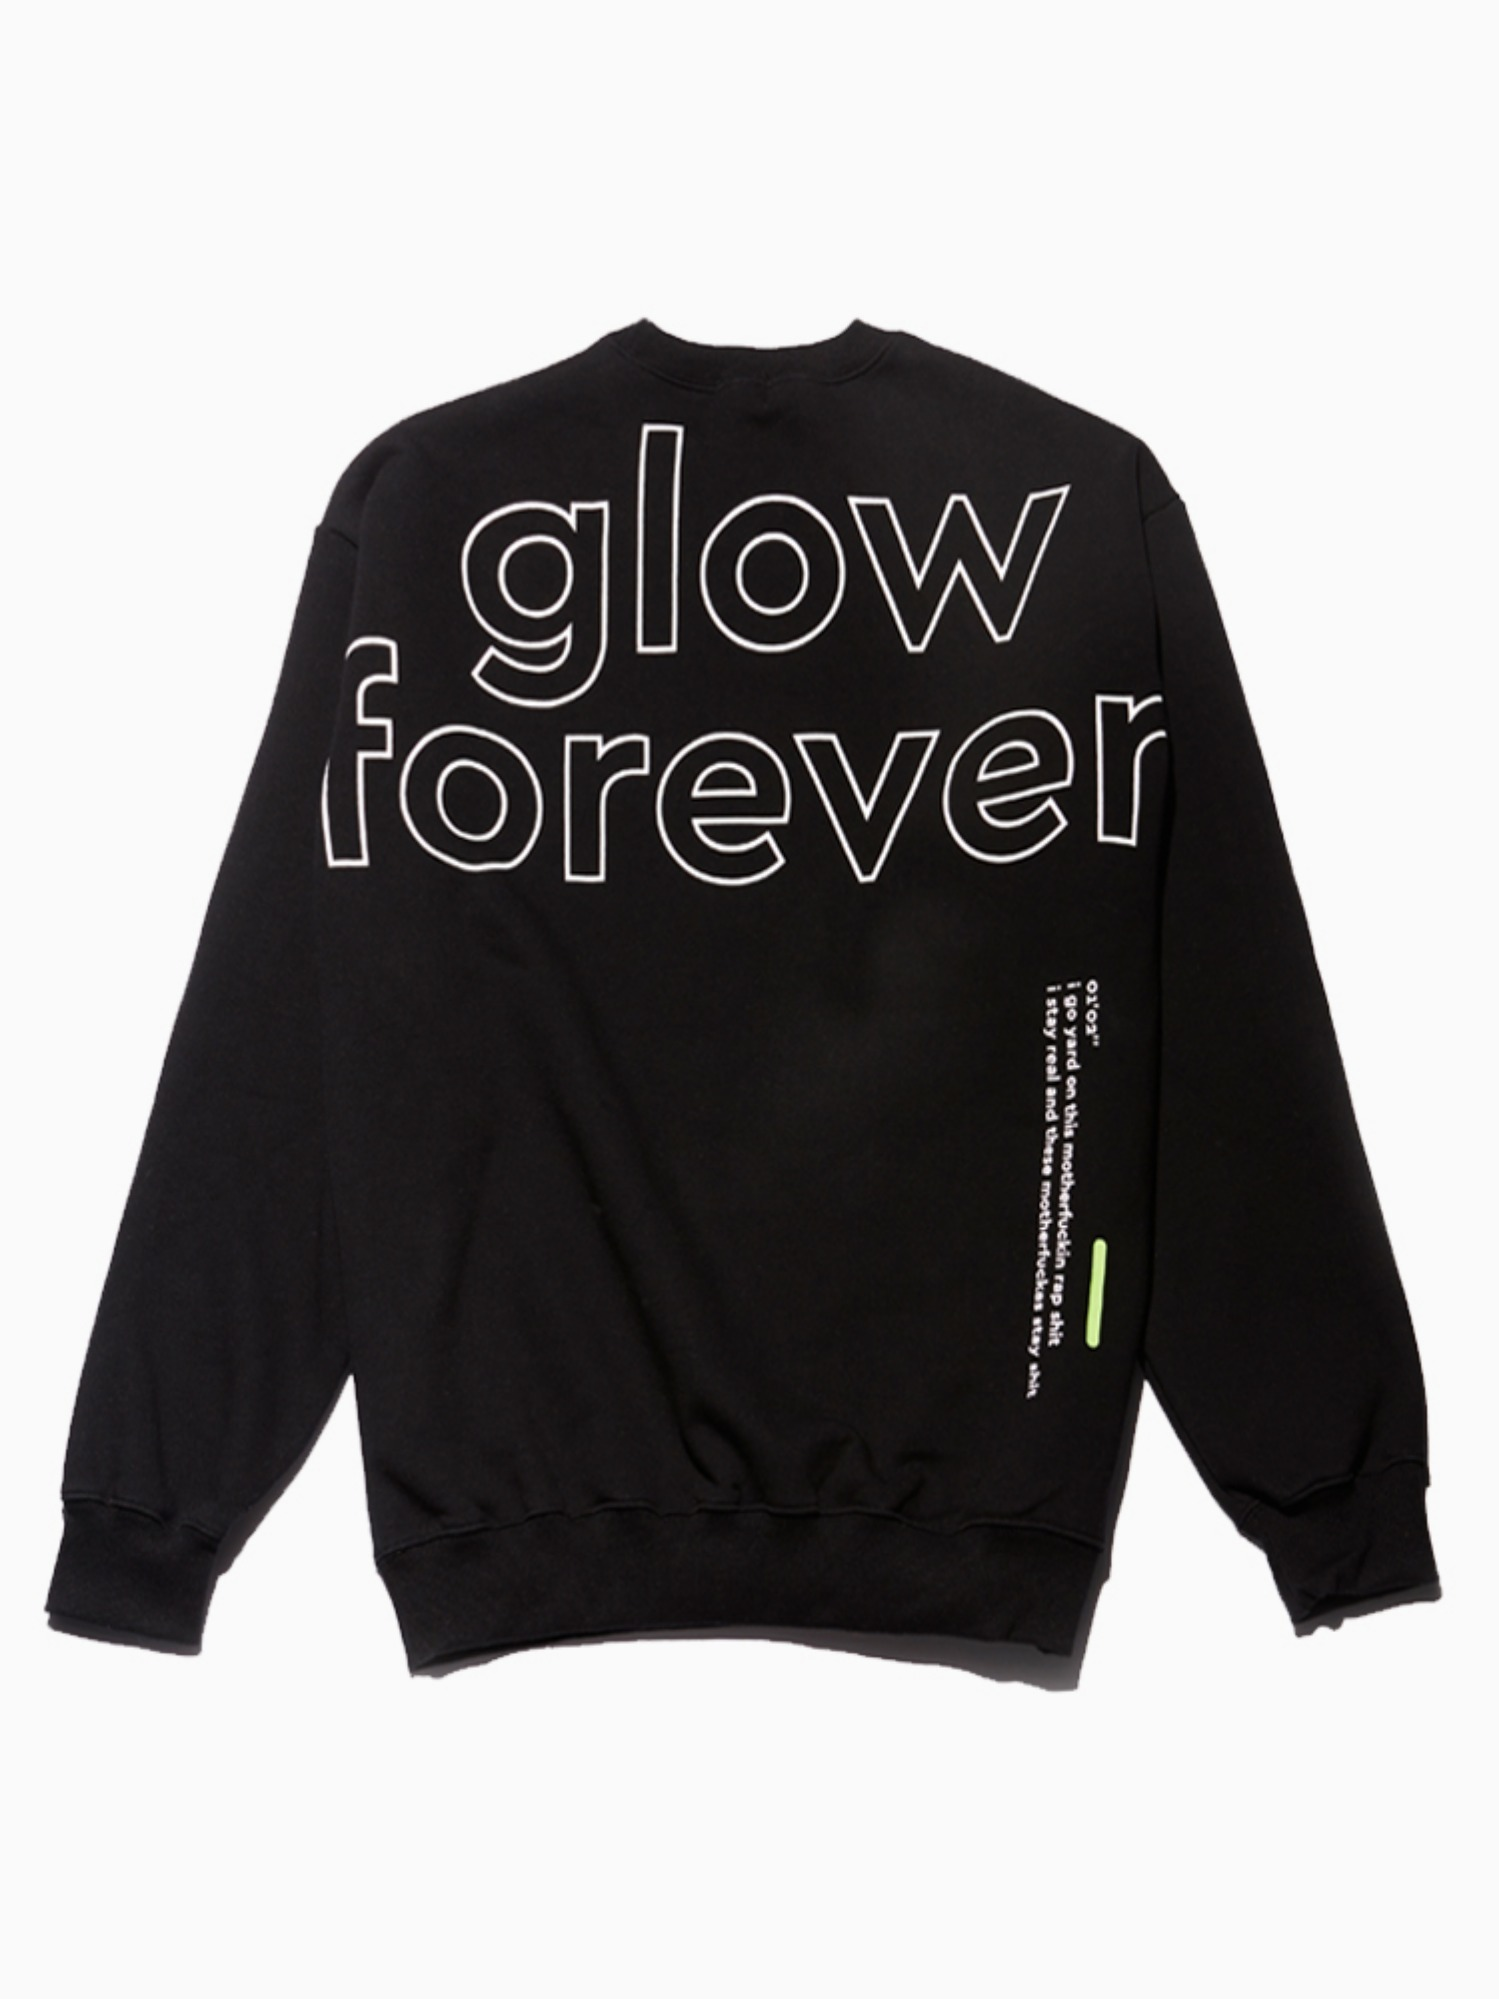 (소량 입고) The Quiett [glow forever] - Crew neck Shirts Black (3rd pre-oreder)